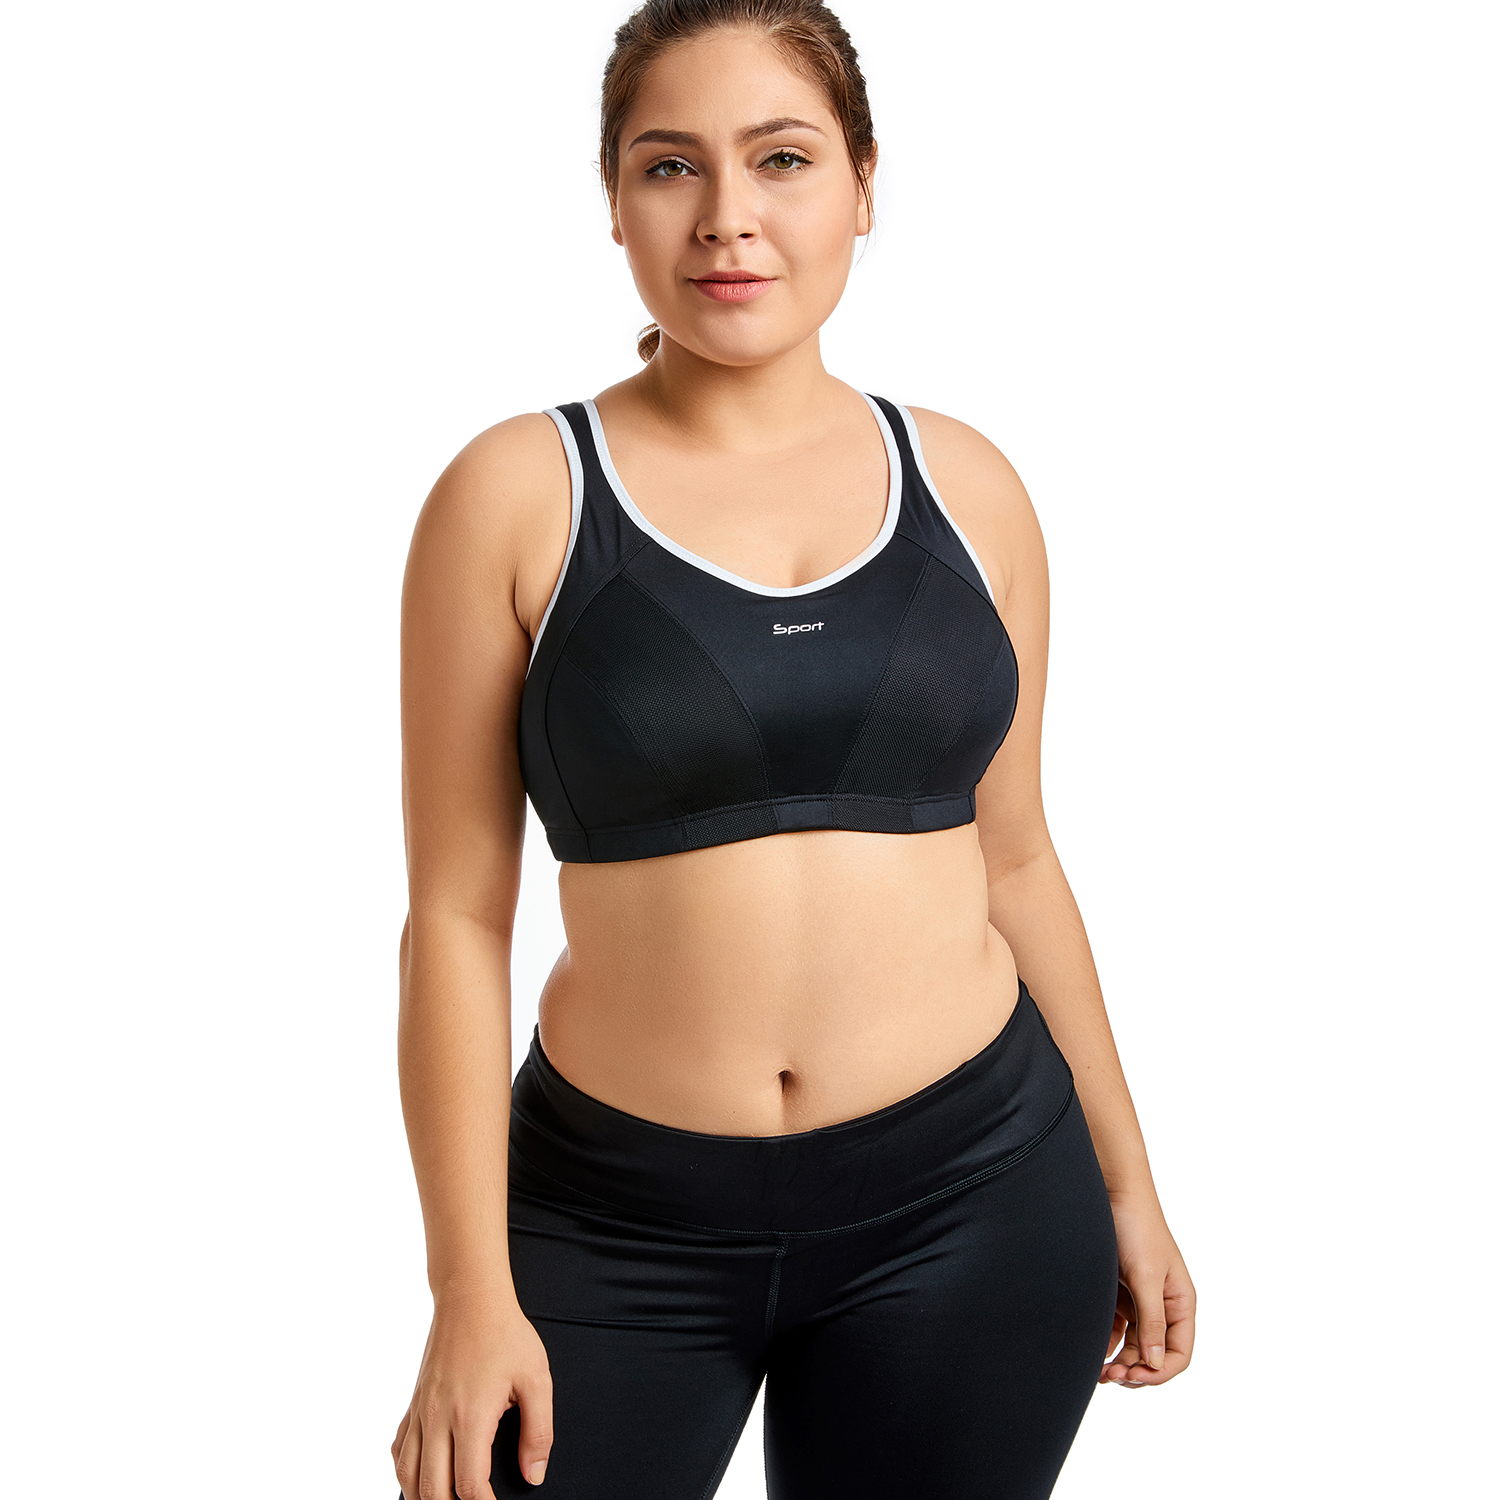 f15fbc5693 Women s High Impact No Bounce Full Support Non Padded Racerback Pro  Exercise Bra-in Bras from Underwear   Sleepwears on Aliexpress.com